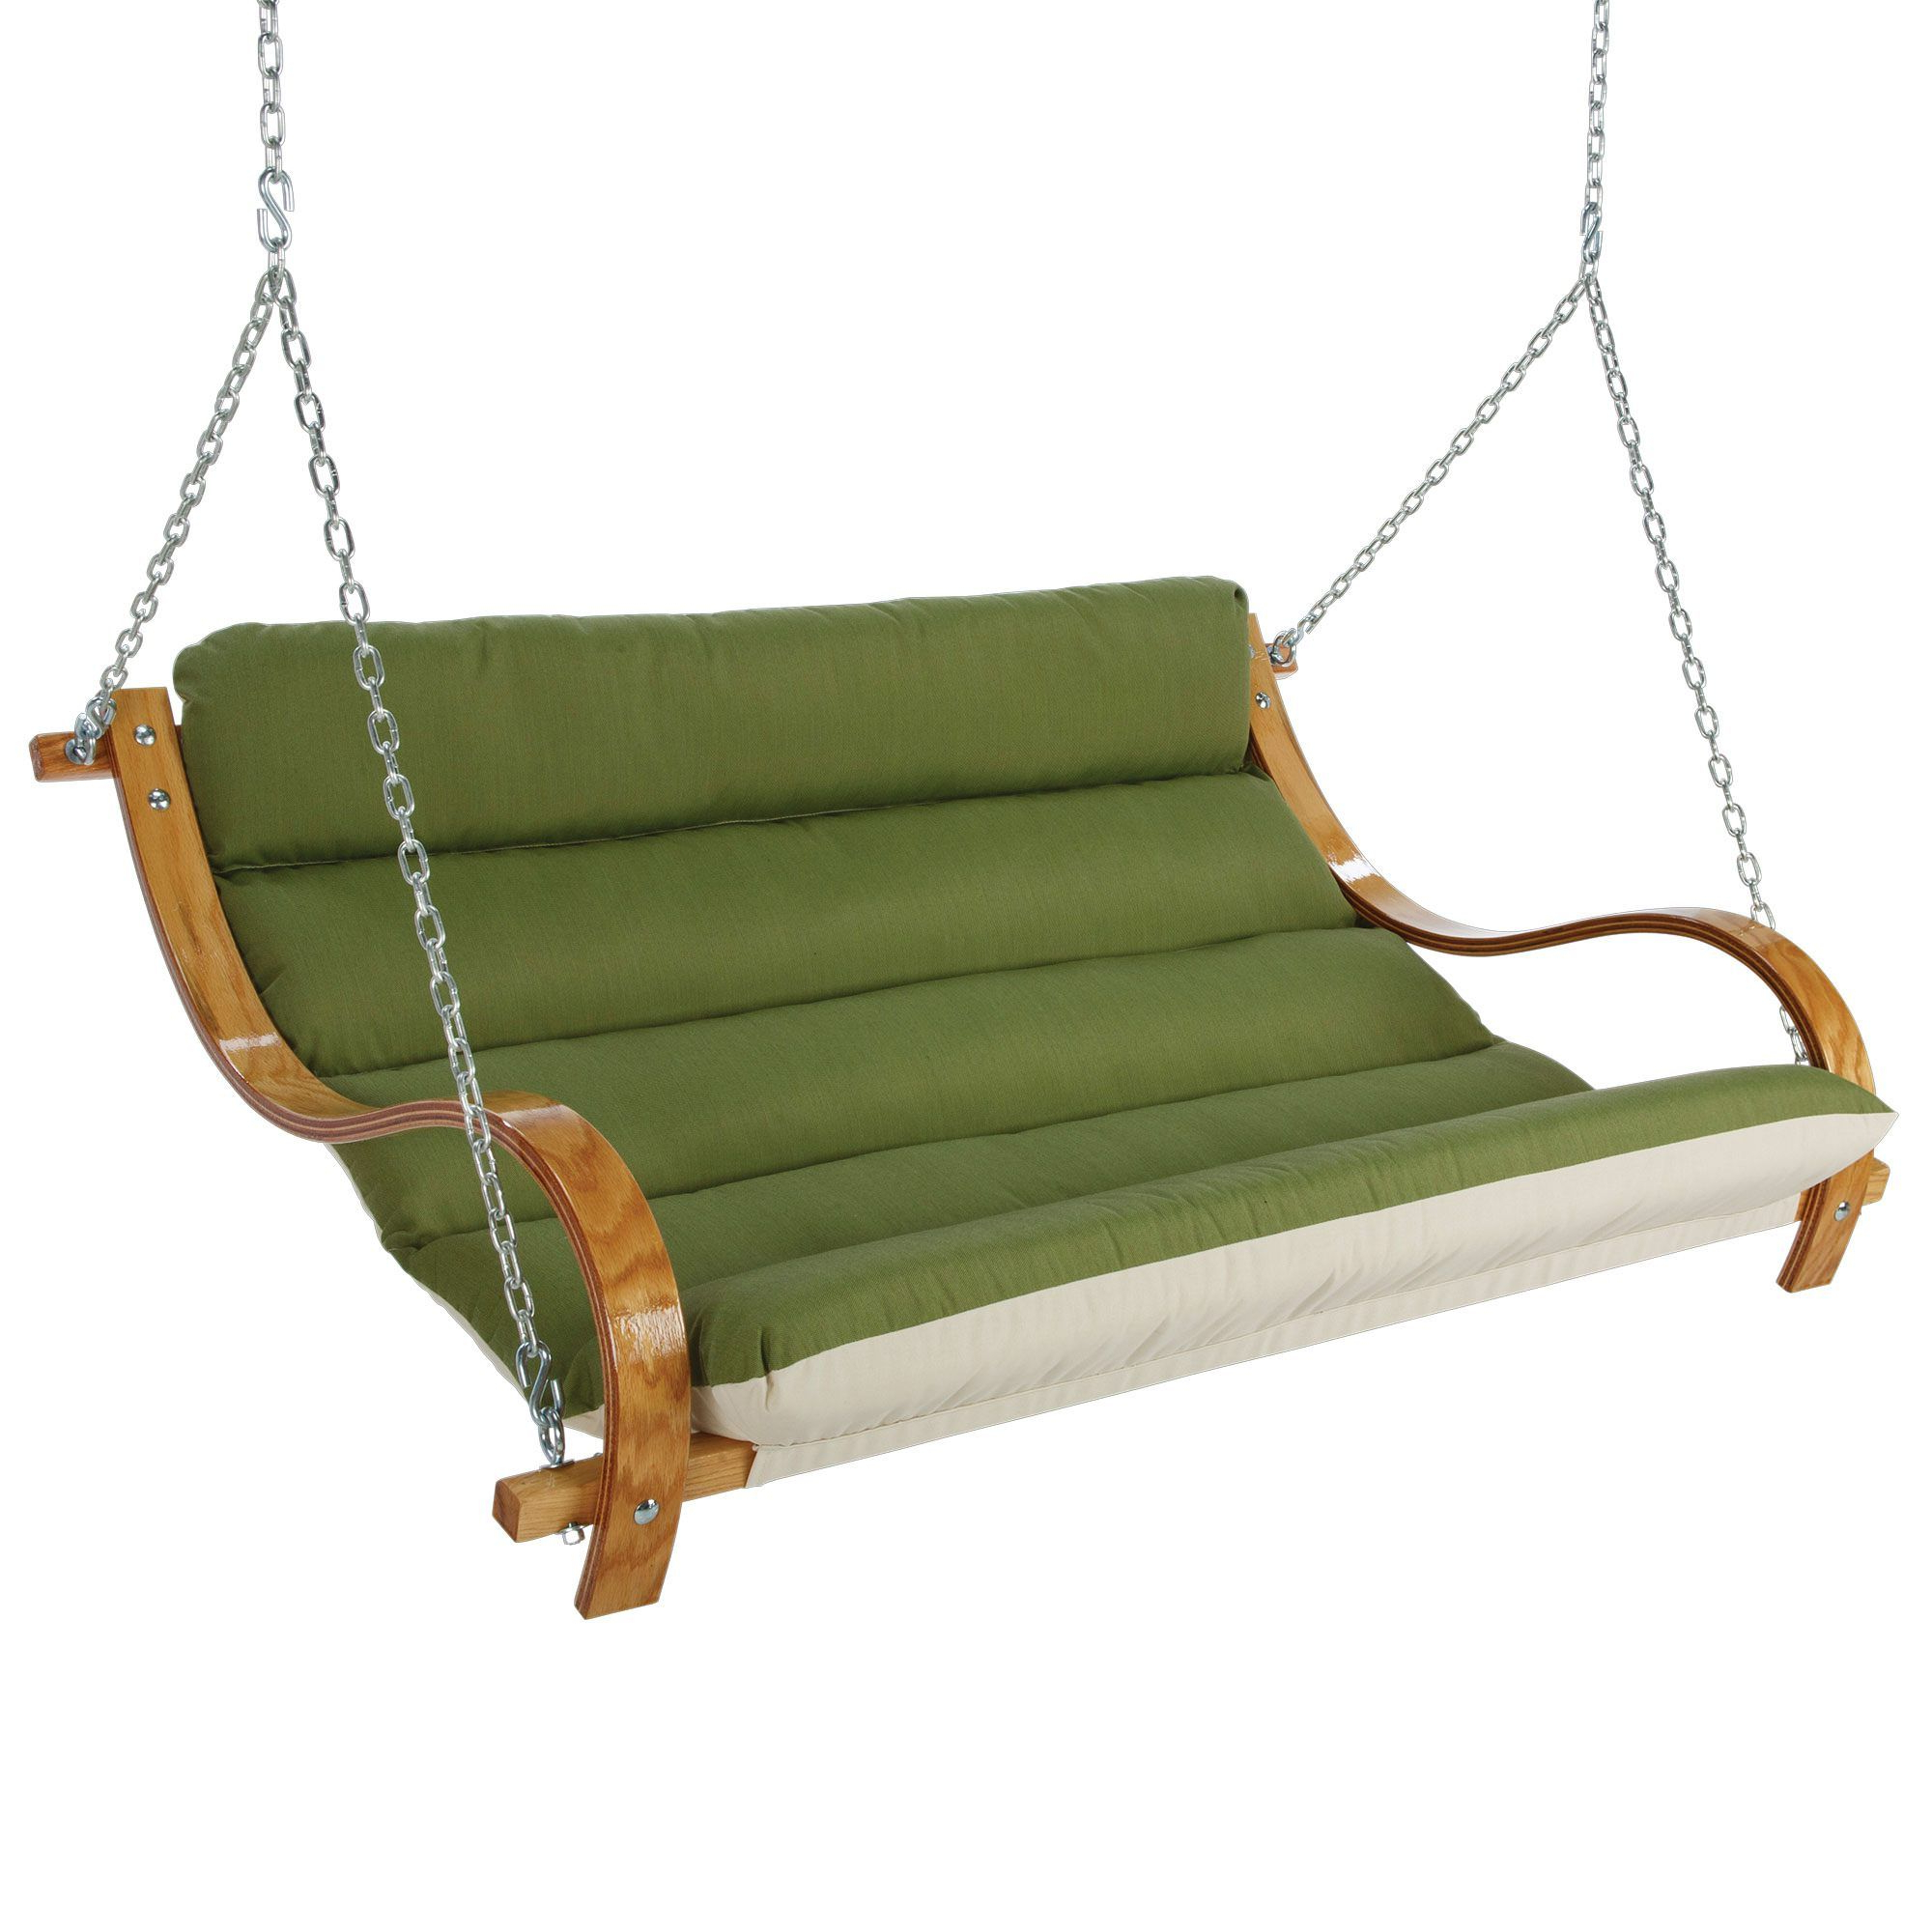 Deluxe Cushion Sunbrella Porch Swings Intended For Famous Deluxe Cushioned Double Swing Made With Sunbrella – Spectrum (View 3 of 30)